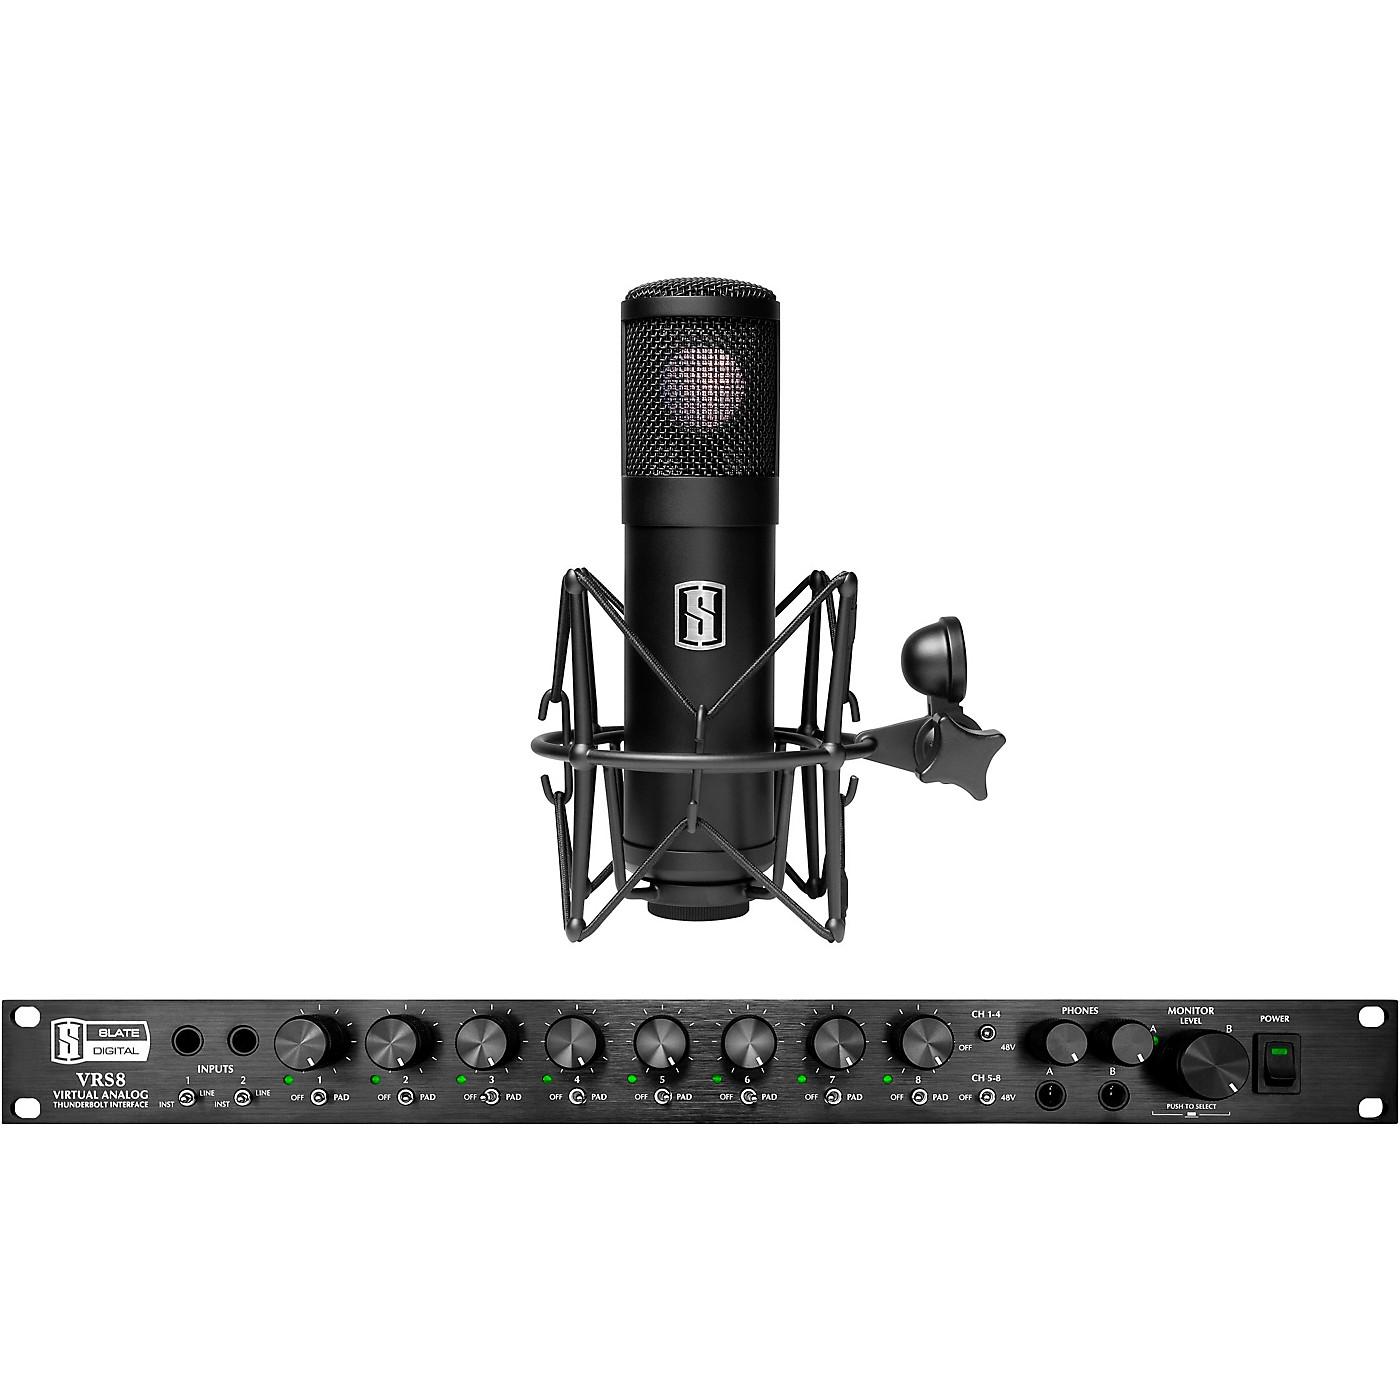 Slate Digital VRS-8 Thunderbolt Audio Interface With Free ML-1 Large-Diaphragm Modeling Microphone thumbnail